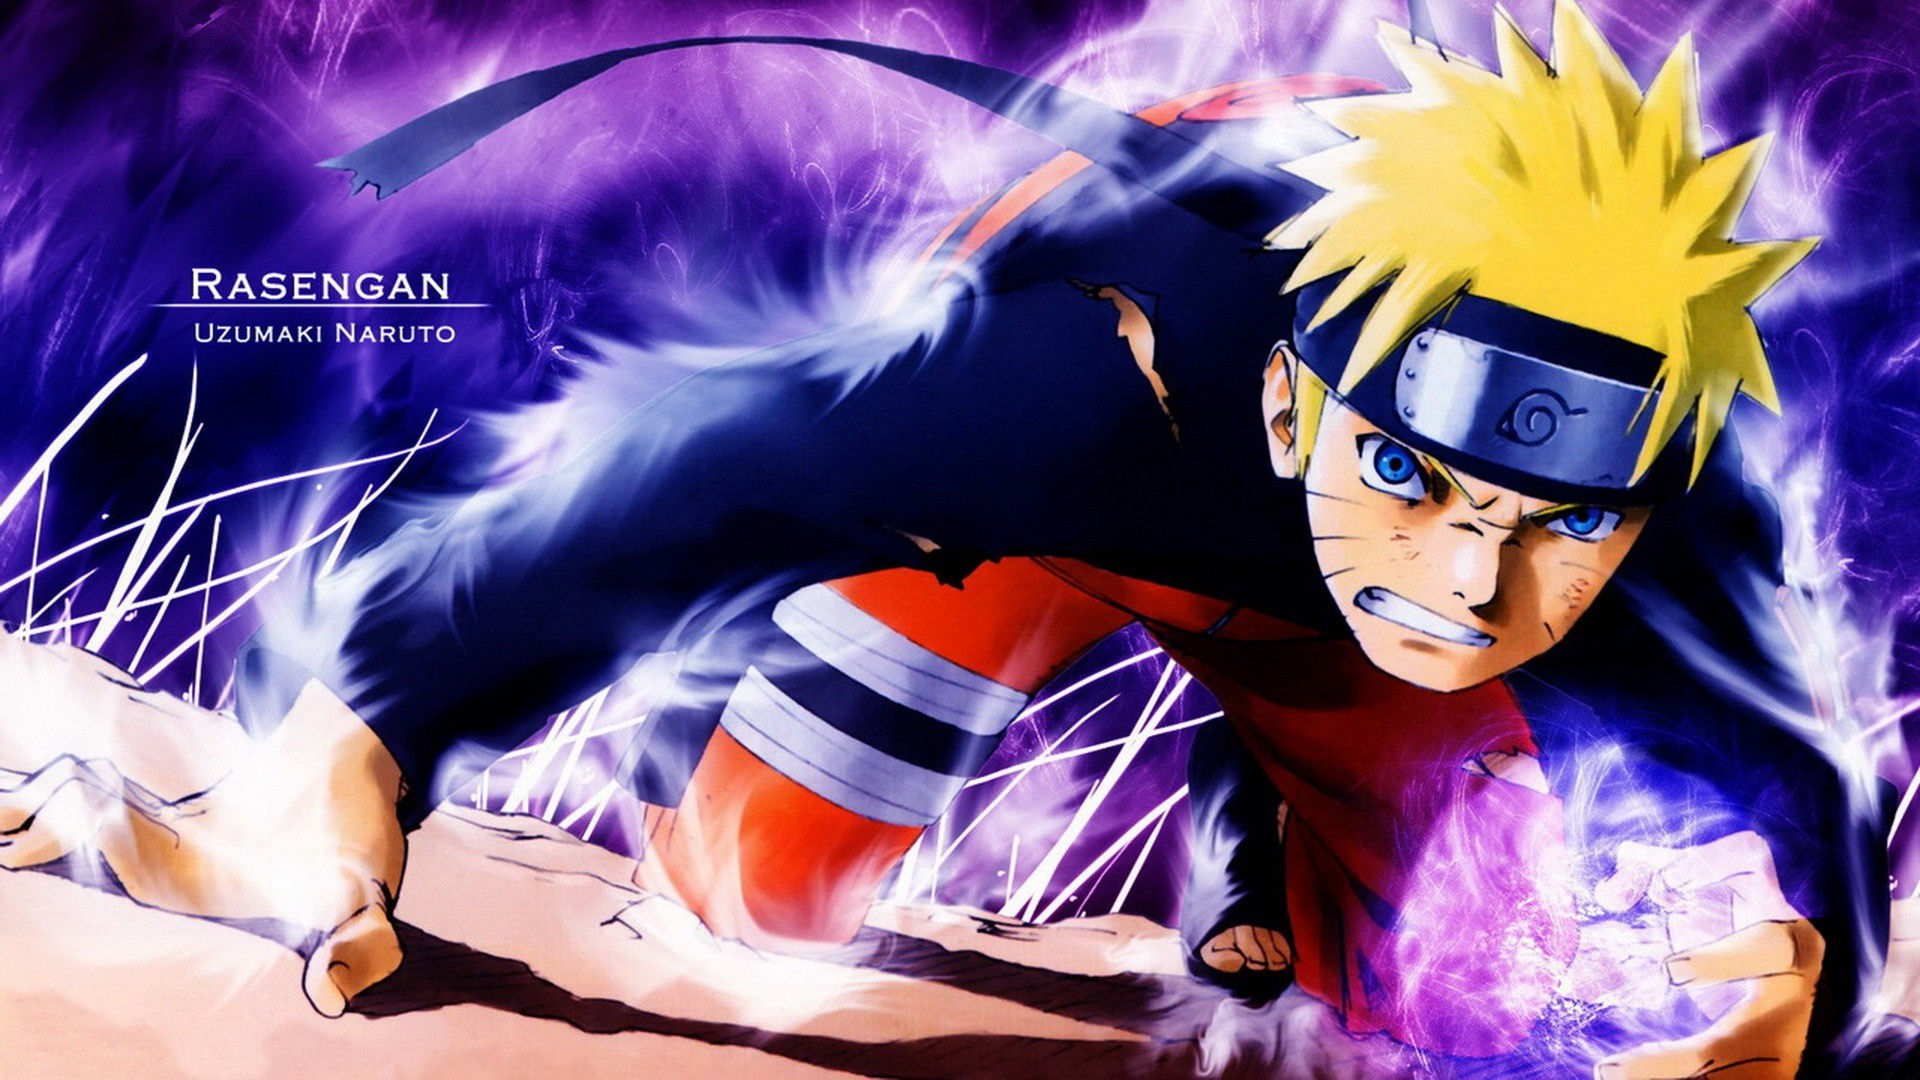 979488 most popular cool naruto wallpapers hd 1920x1080 free download